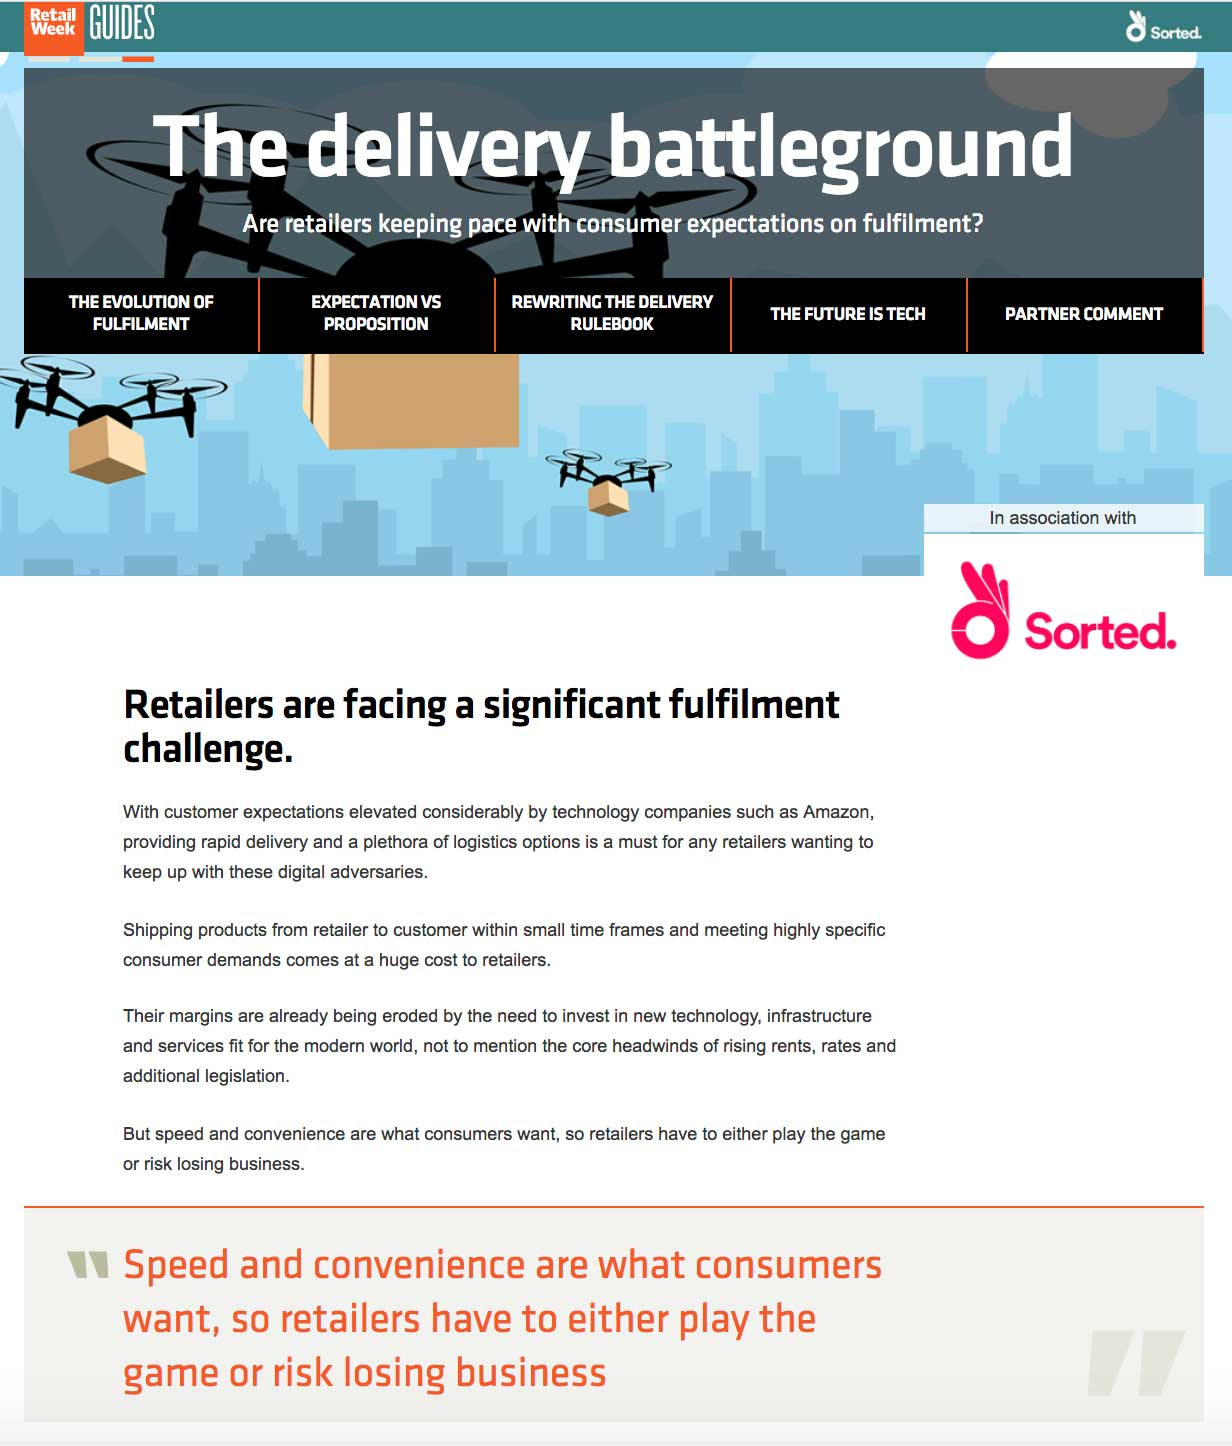 The delivery battleground